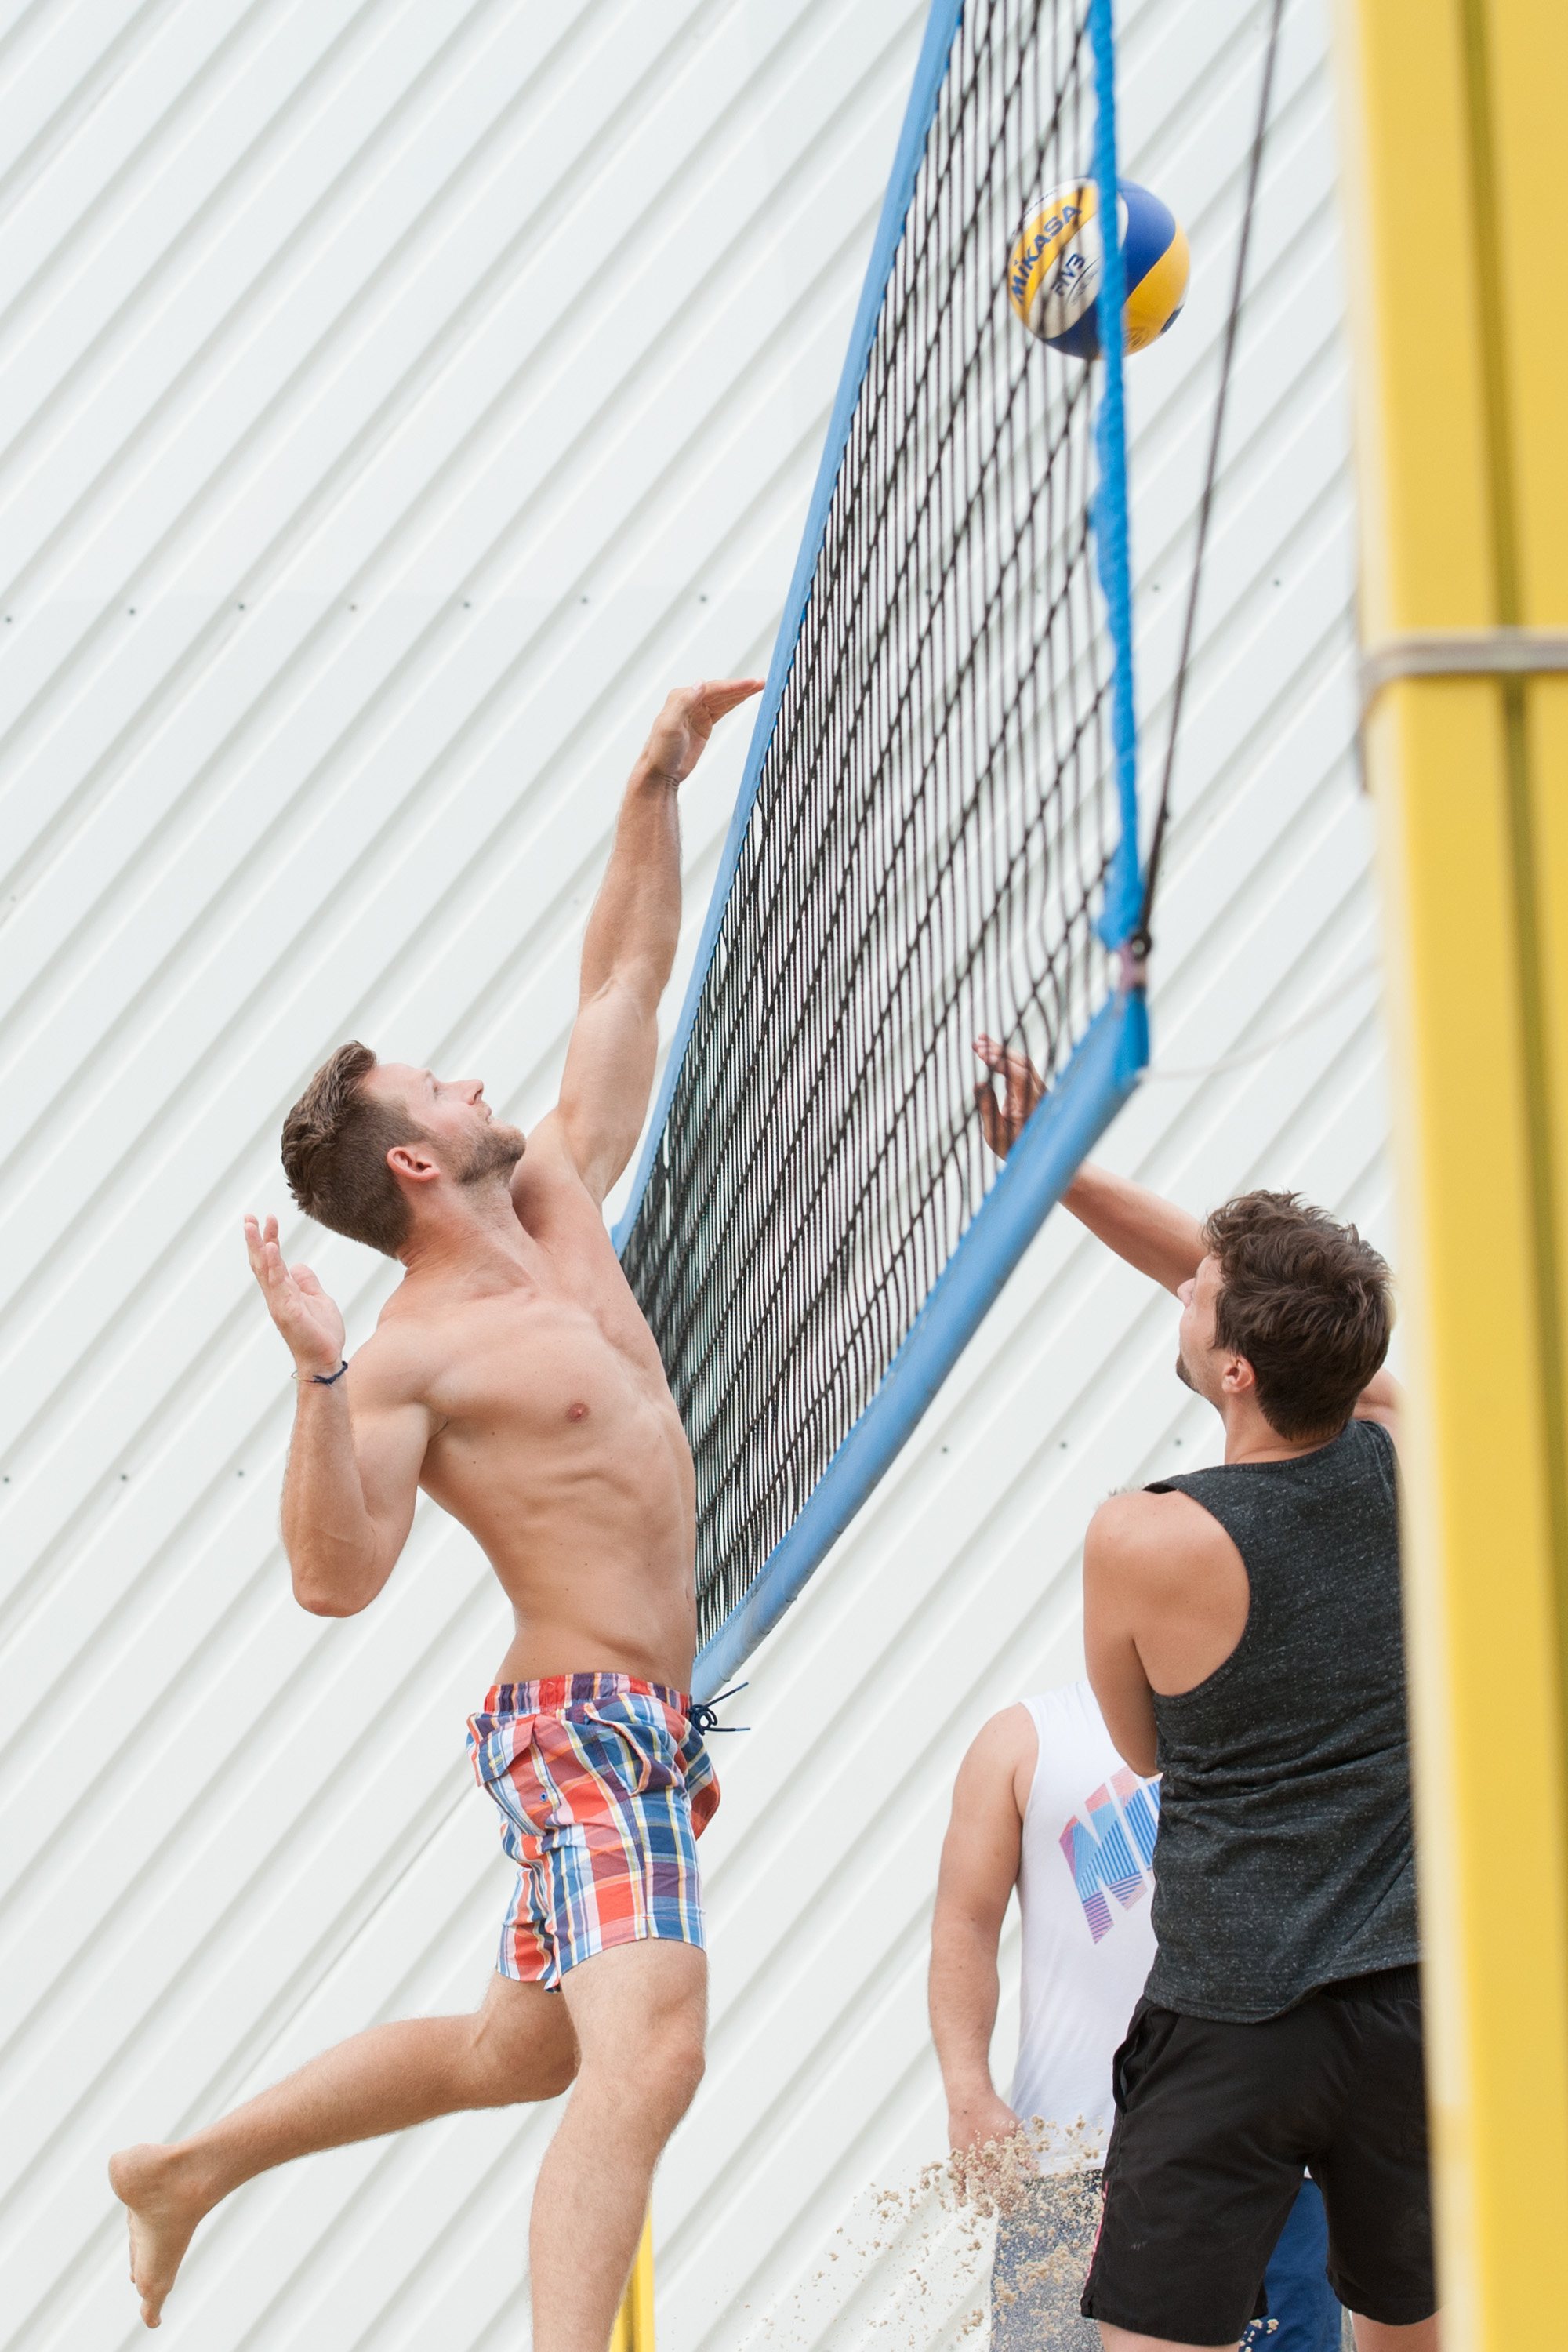 Pueblo_Beachvolleyball_053.jpg